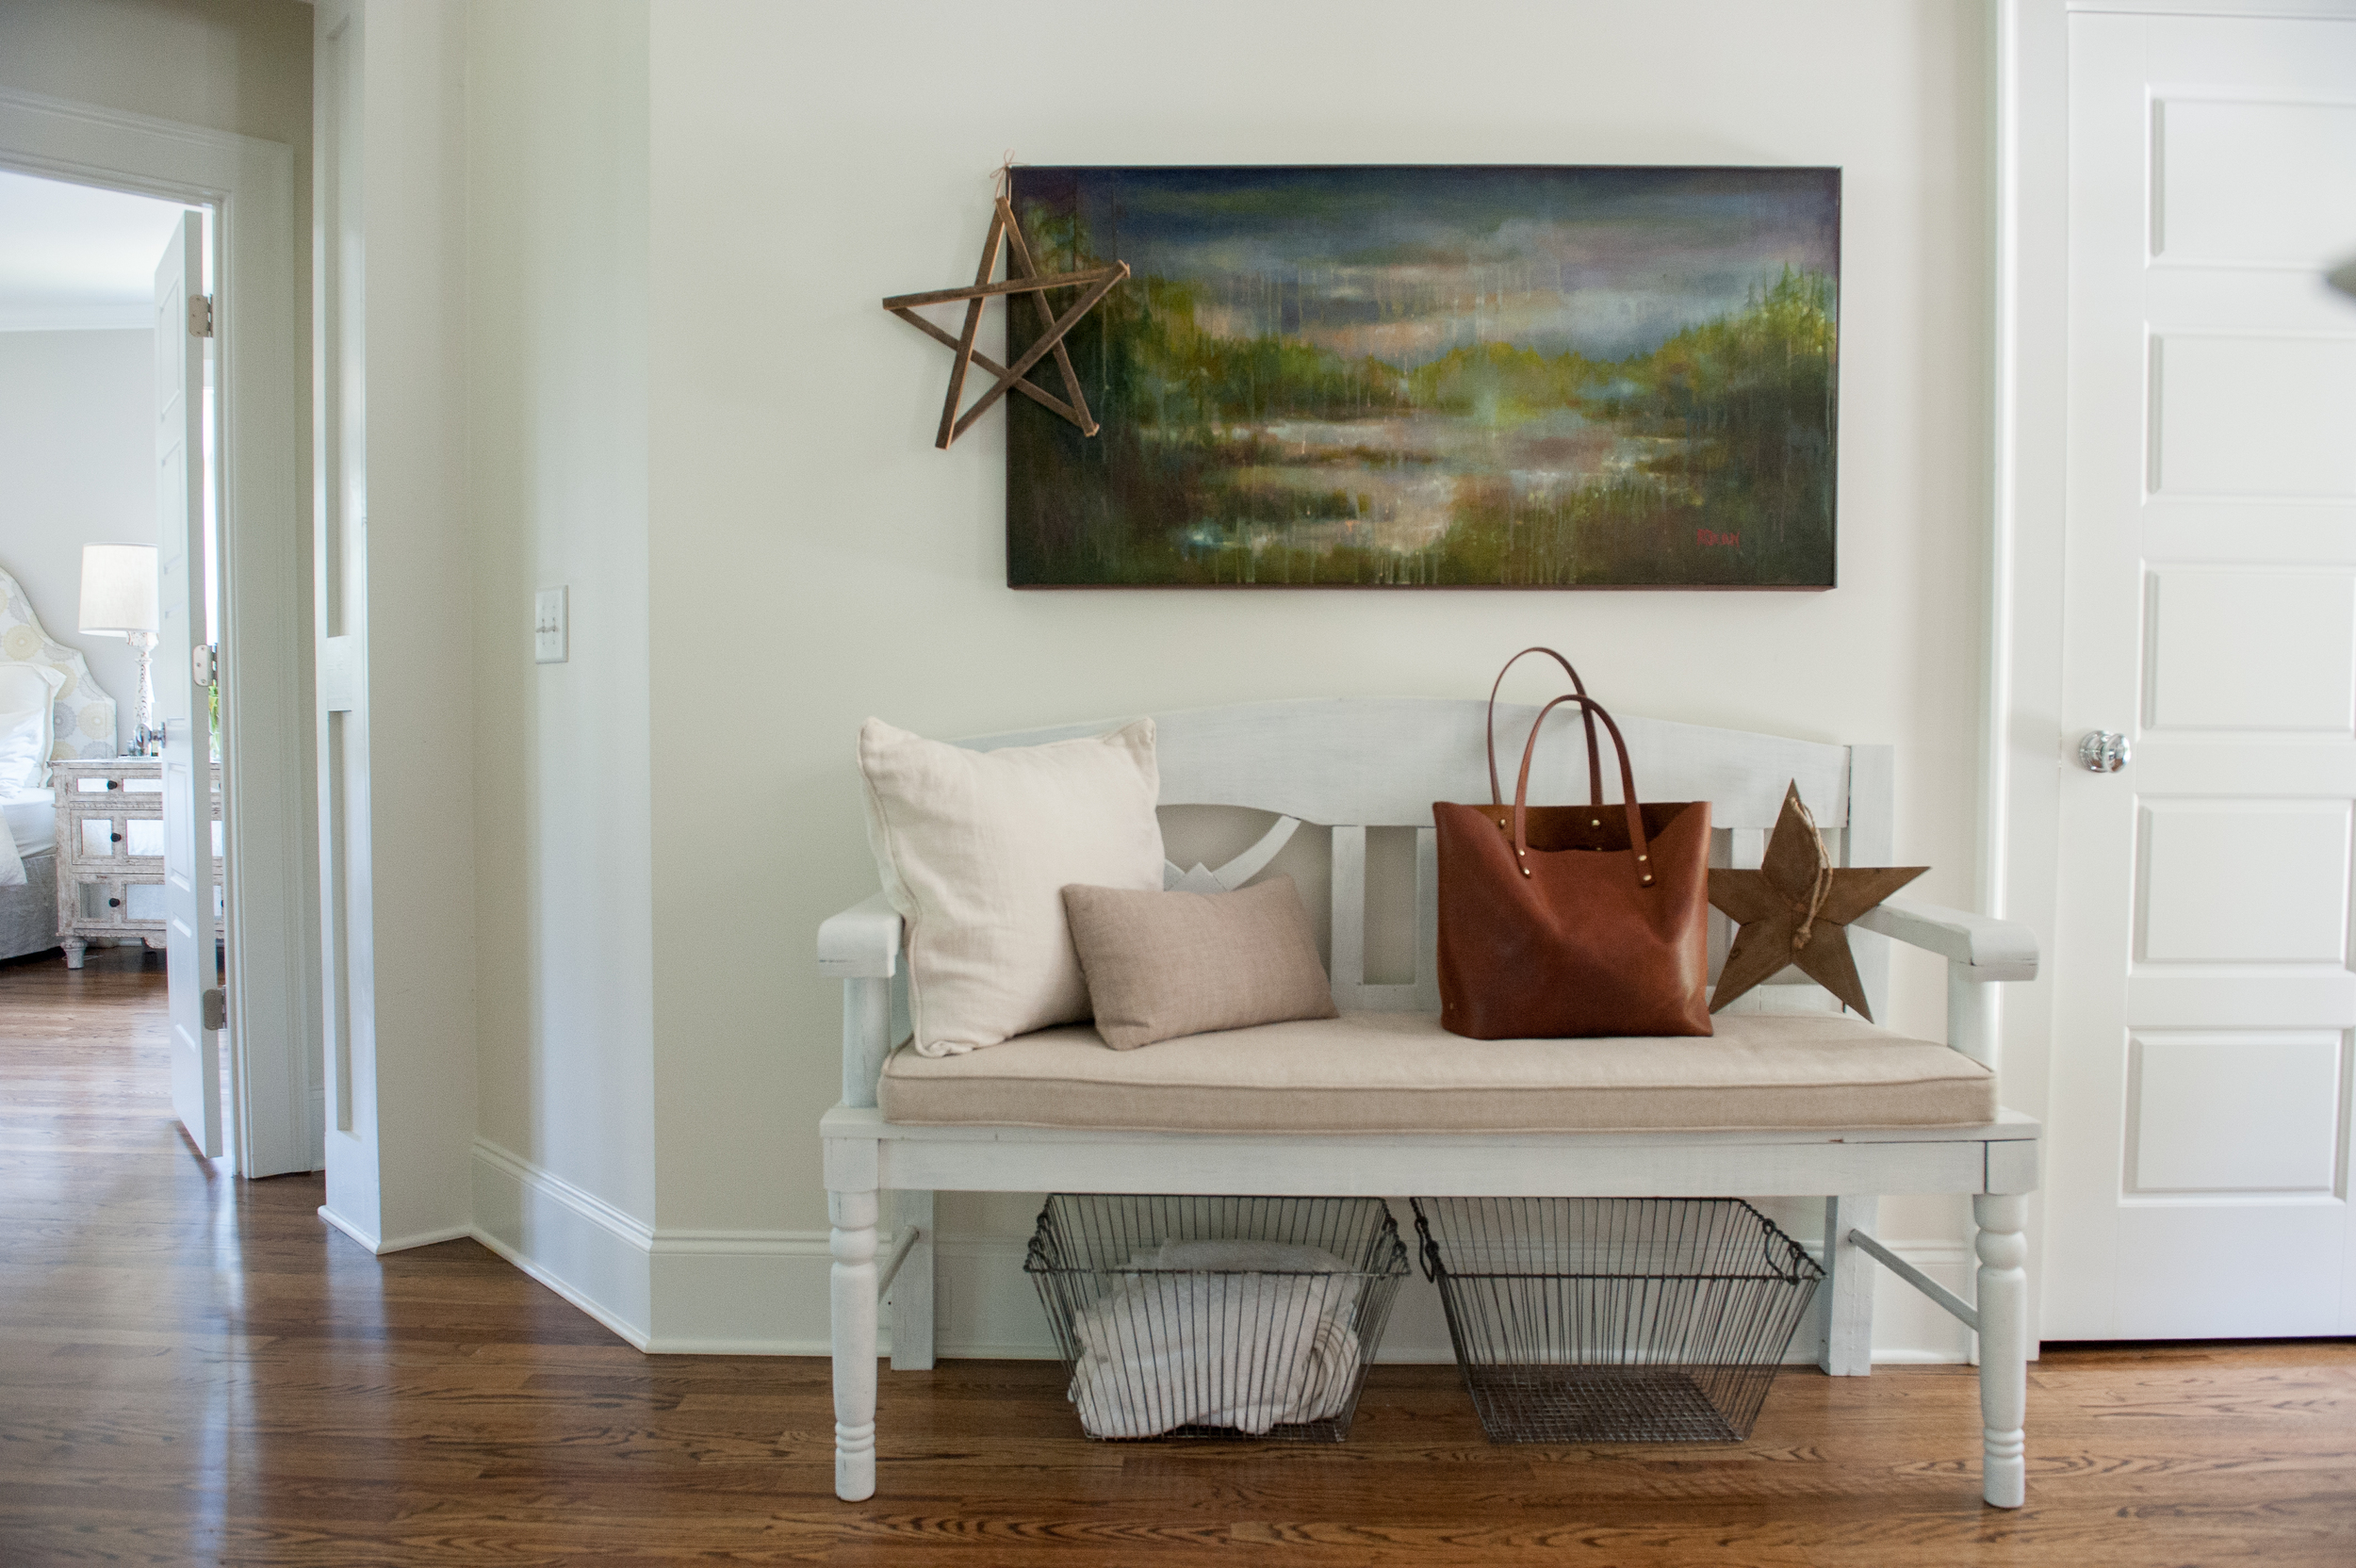 The painting in the entry was from a local artist and it's of the area around her parent's home in Canada.